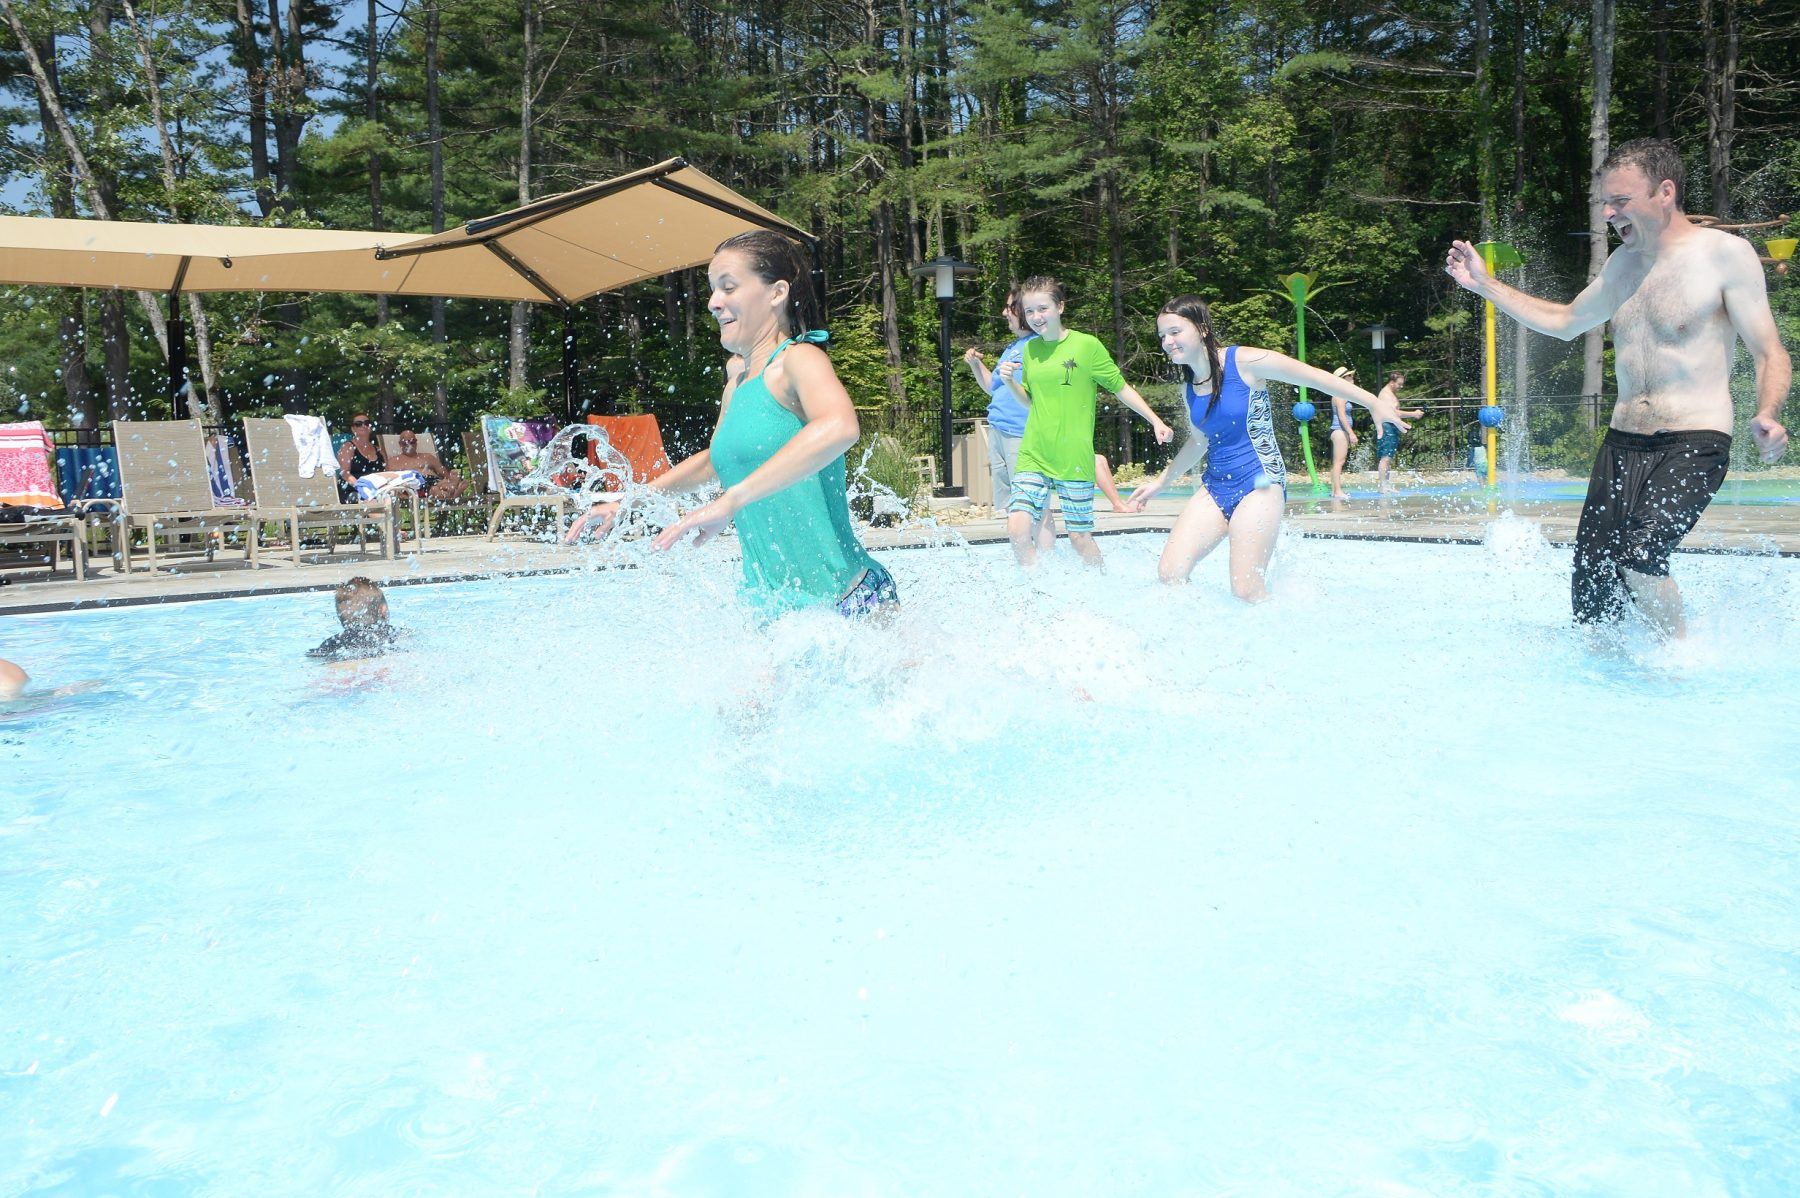 In the foreground of the photo a woman is shown running into the zero entry pool.  In the background of the photo a man accompanied by a young boy and a young girl are shown running into the pool. To the far left of the photo guests are shown lounging in the shaded area on the pool deck.